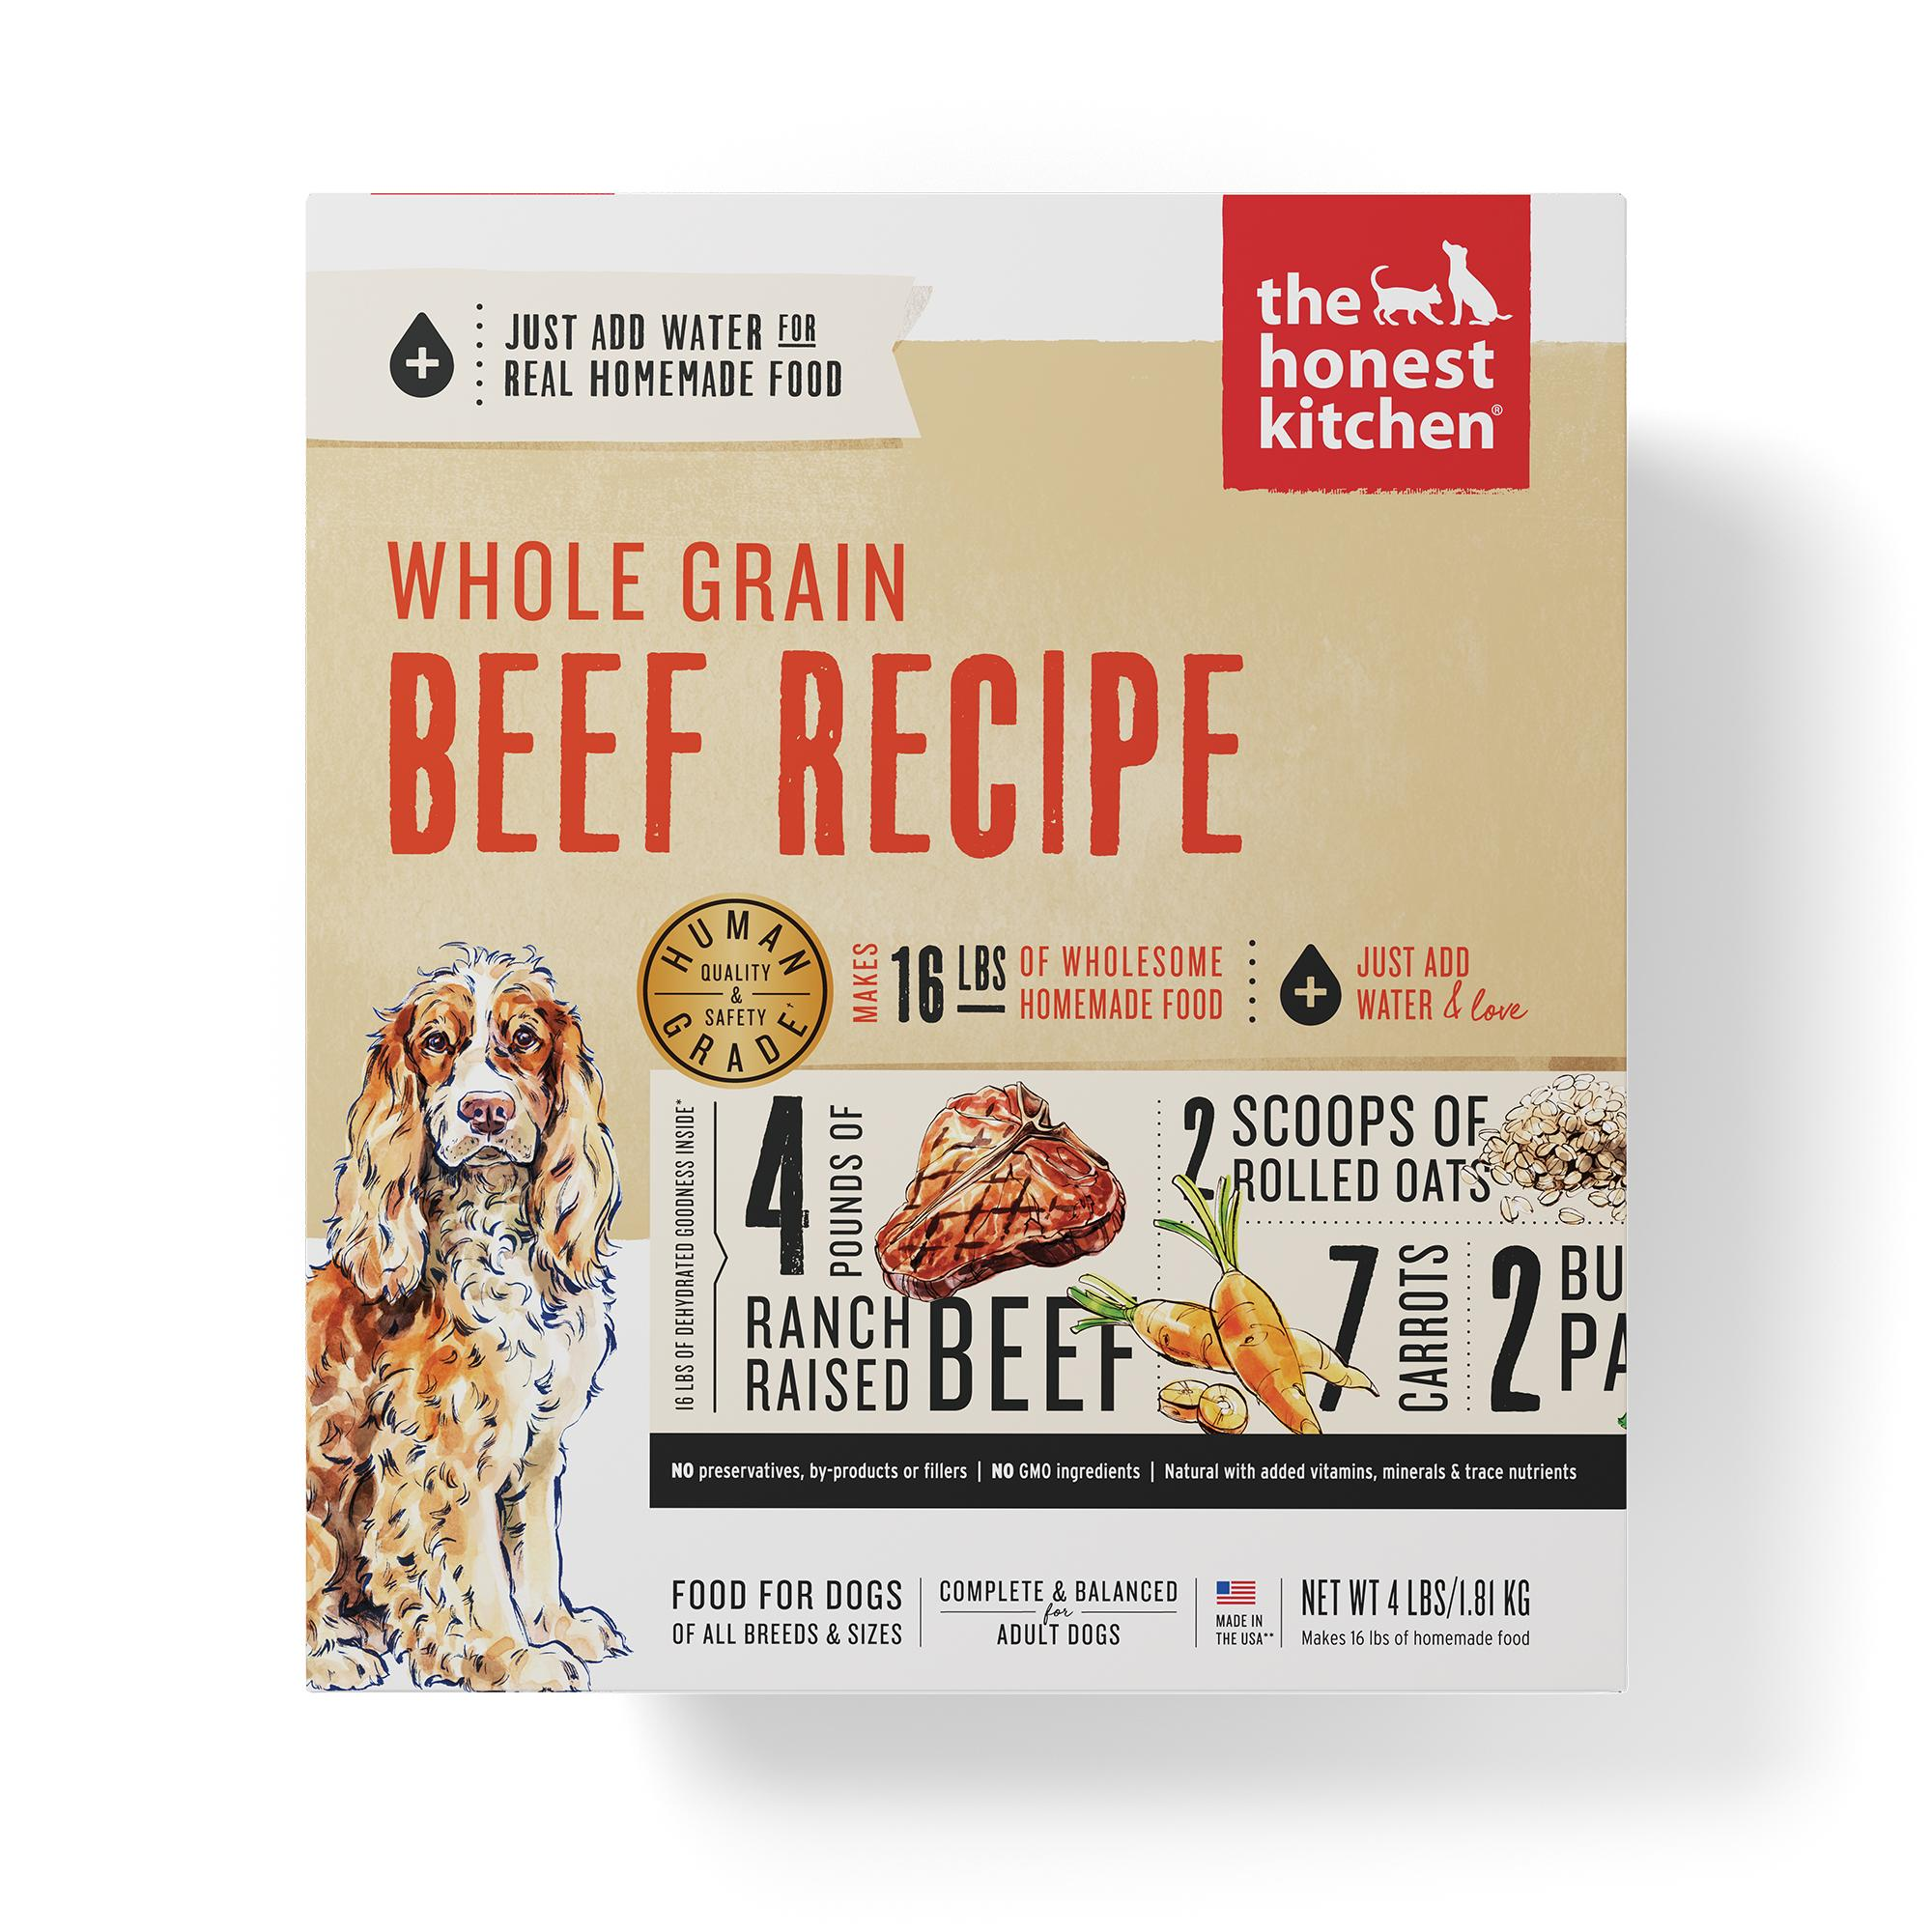 The Honest Kitchen Whole Grain Beef Recipe Dehydrated Dog Food, 4-lb box